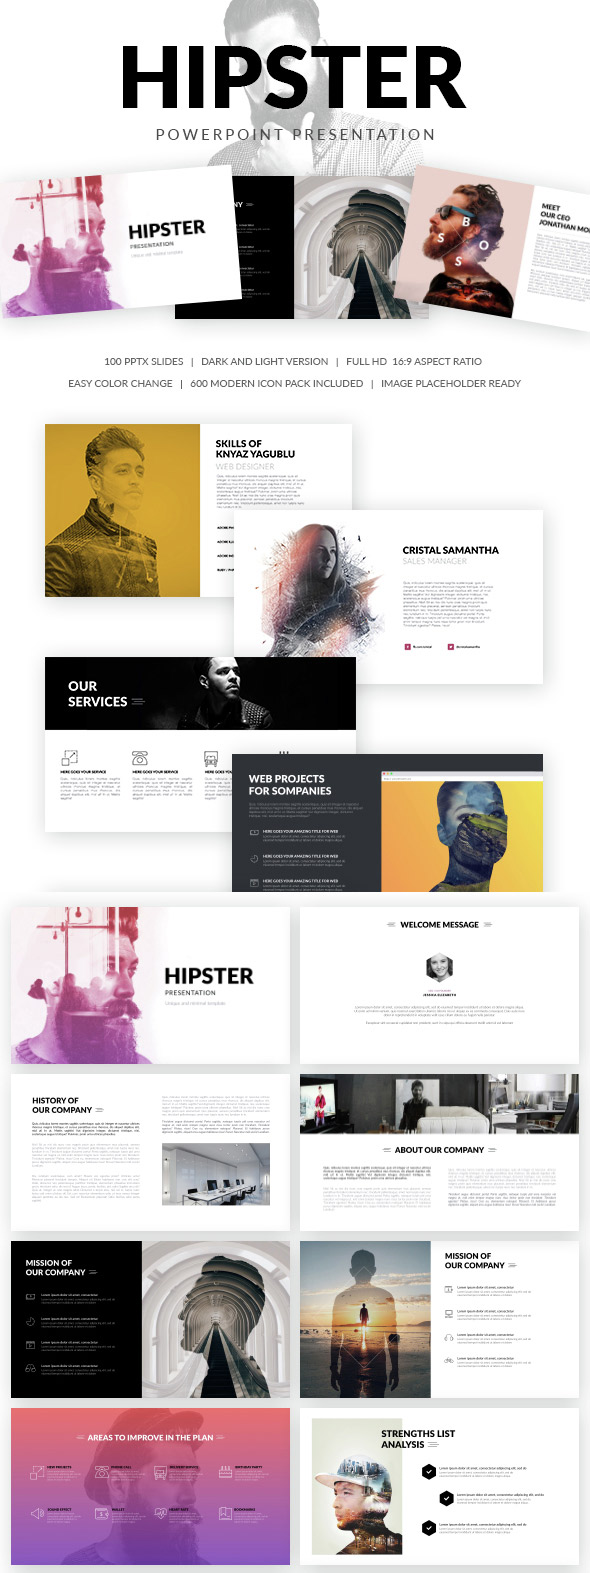 20 ppt templates for simple modern powerpoint presentations hipster modern ppt presentation template toneelgroepblik Gallery